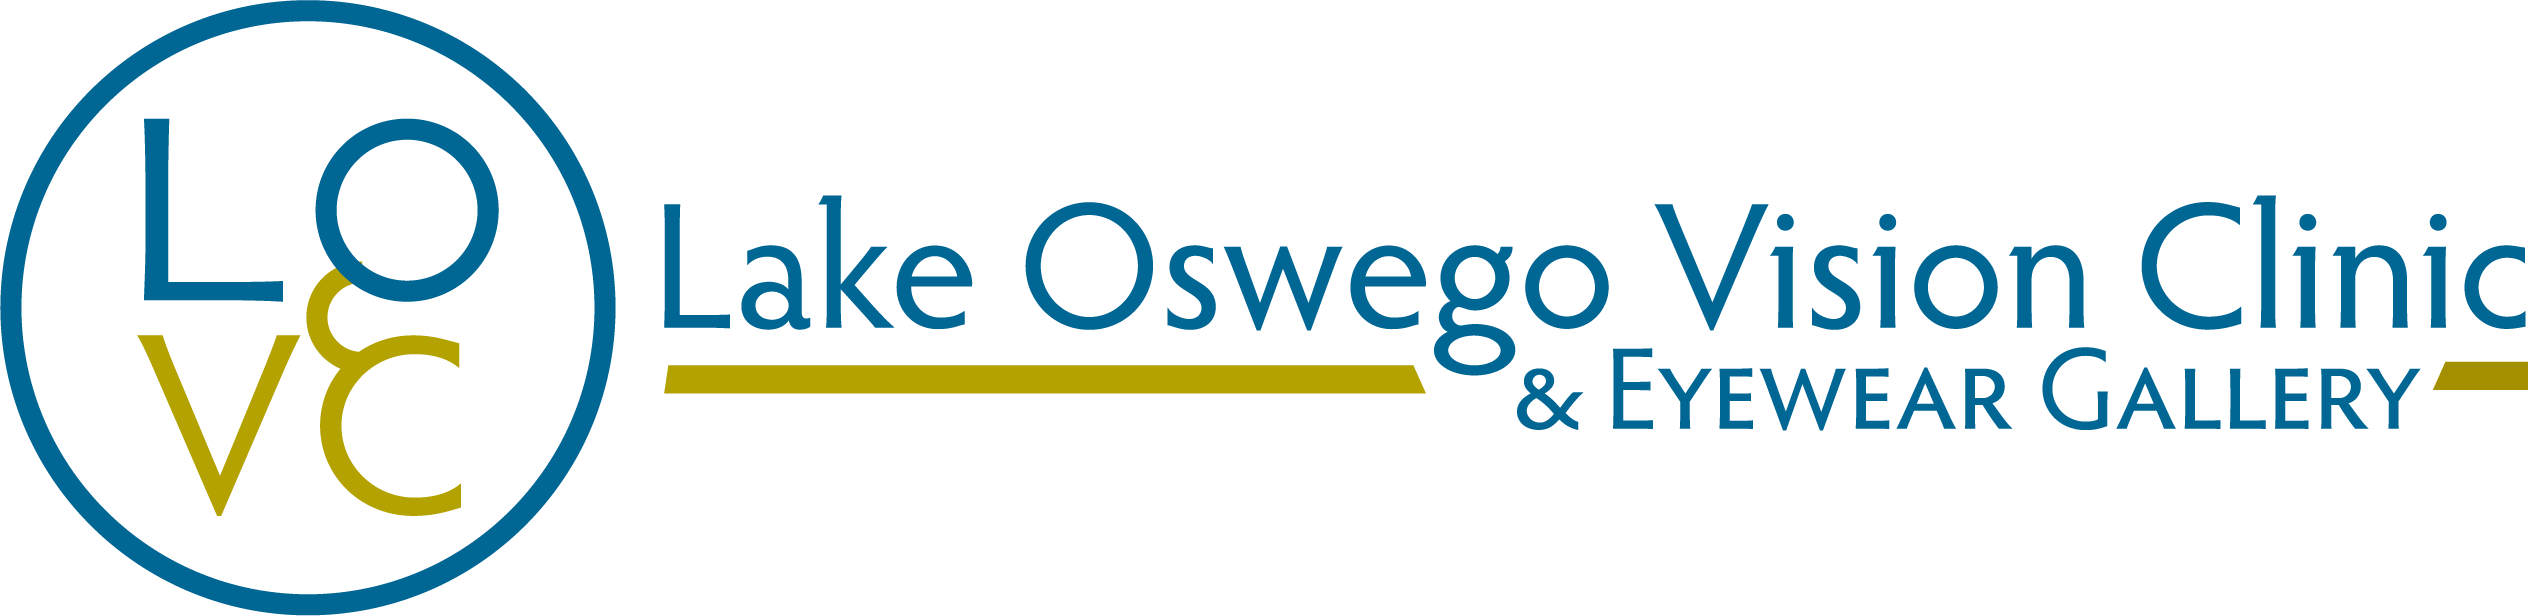 Lake Oswego Vision Clinic